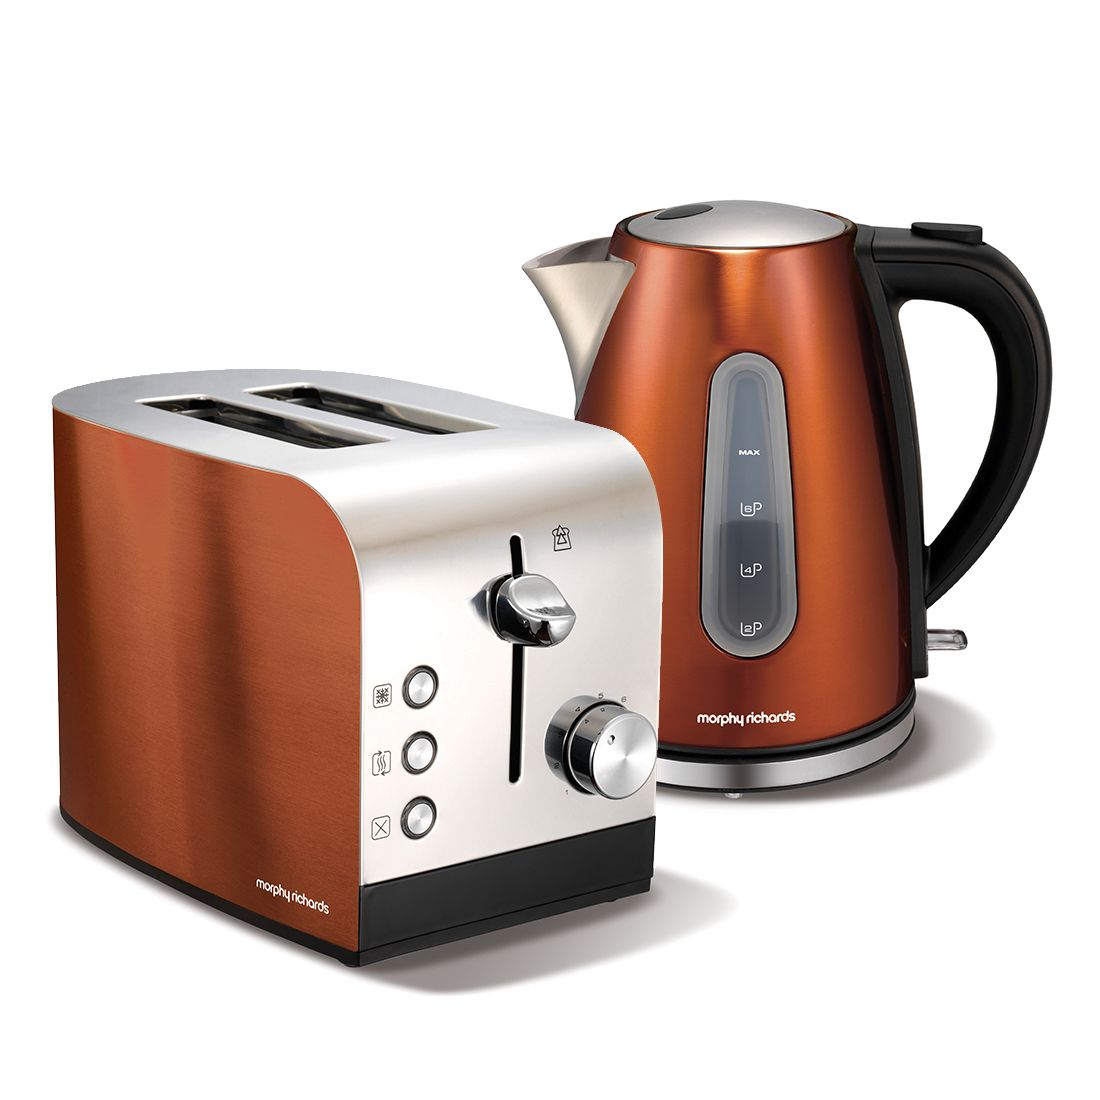 Morphy richards copper accents kettle toaster set for Kitchen set kettle toaster microwave